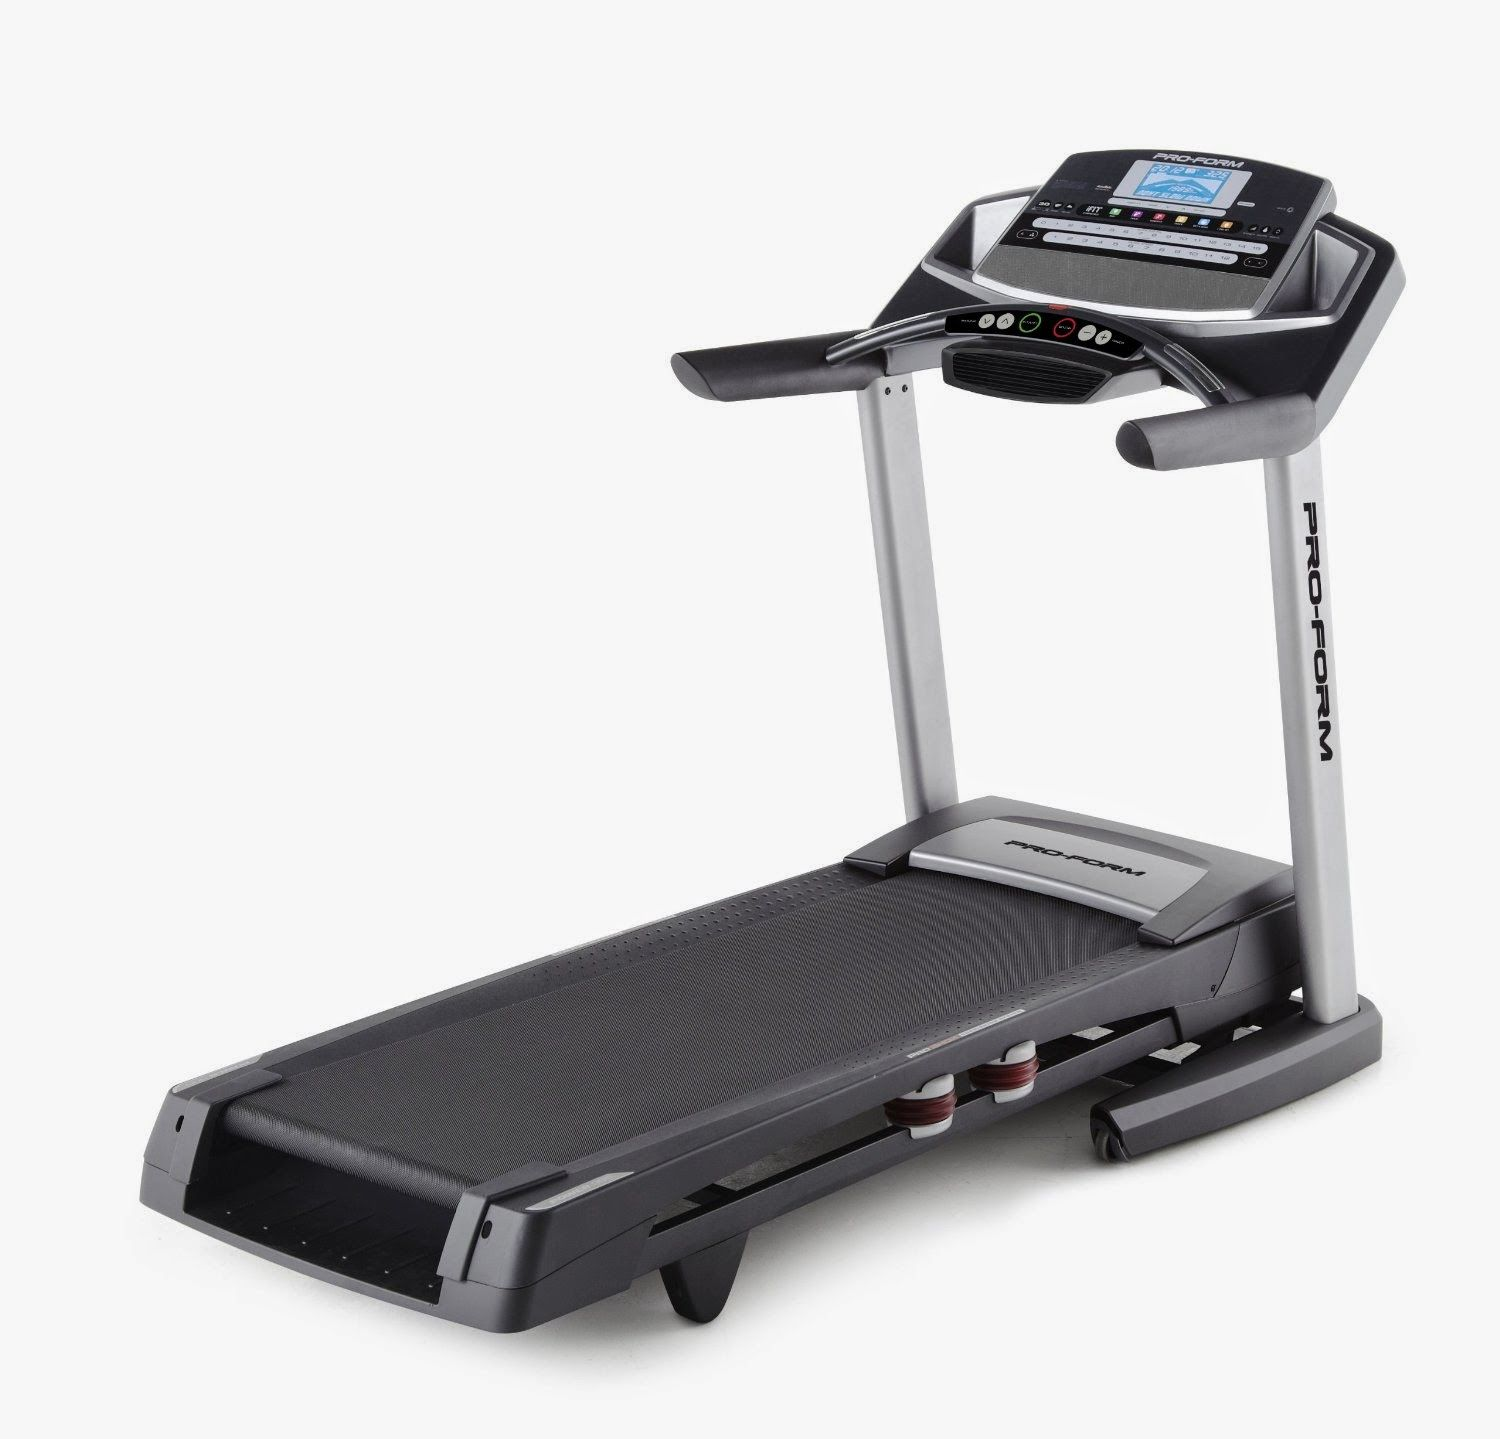 Proform Power 995C Treadmill 998.99 with Free Shipping